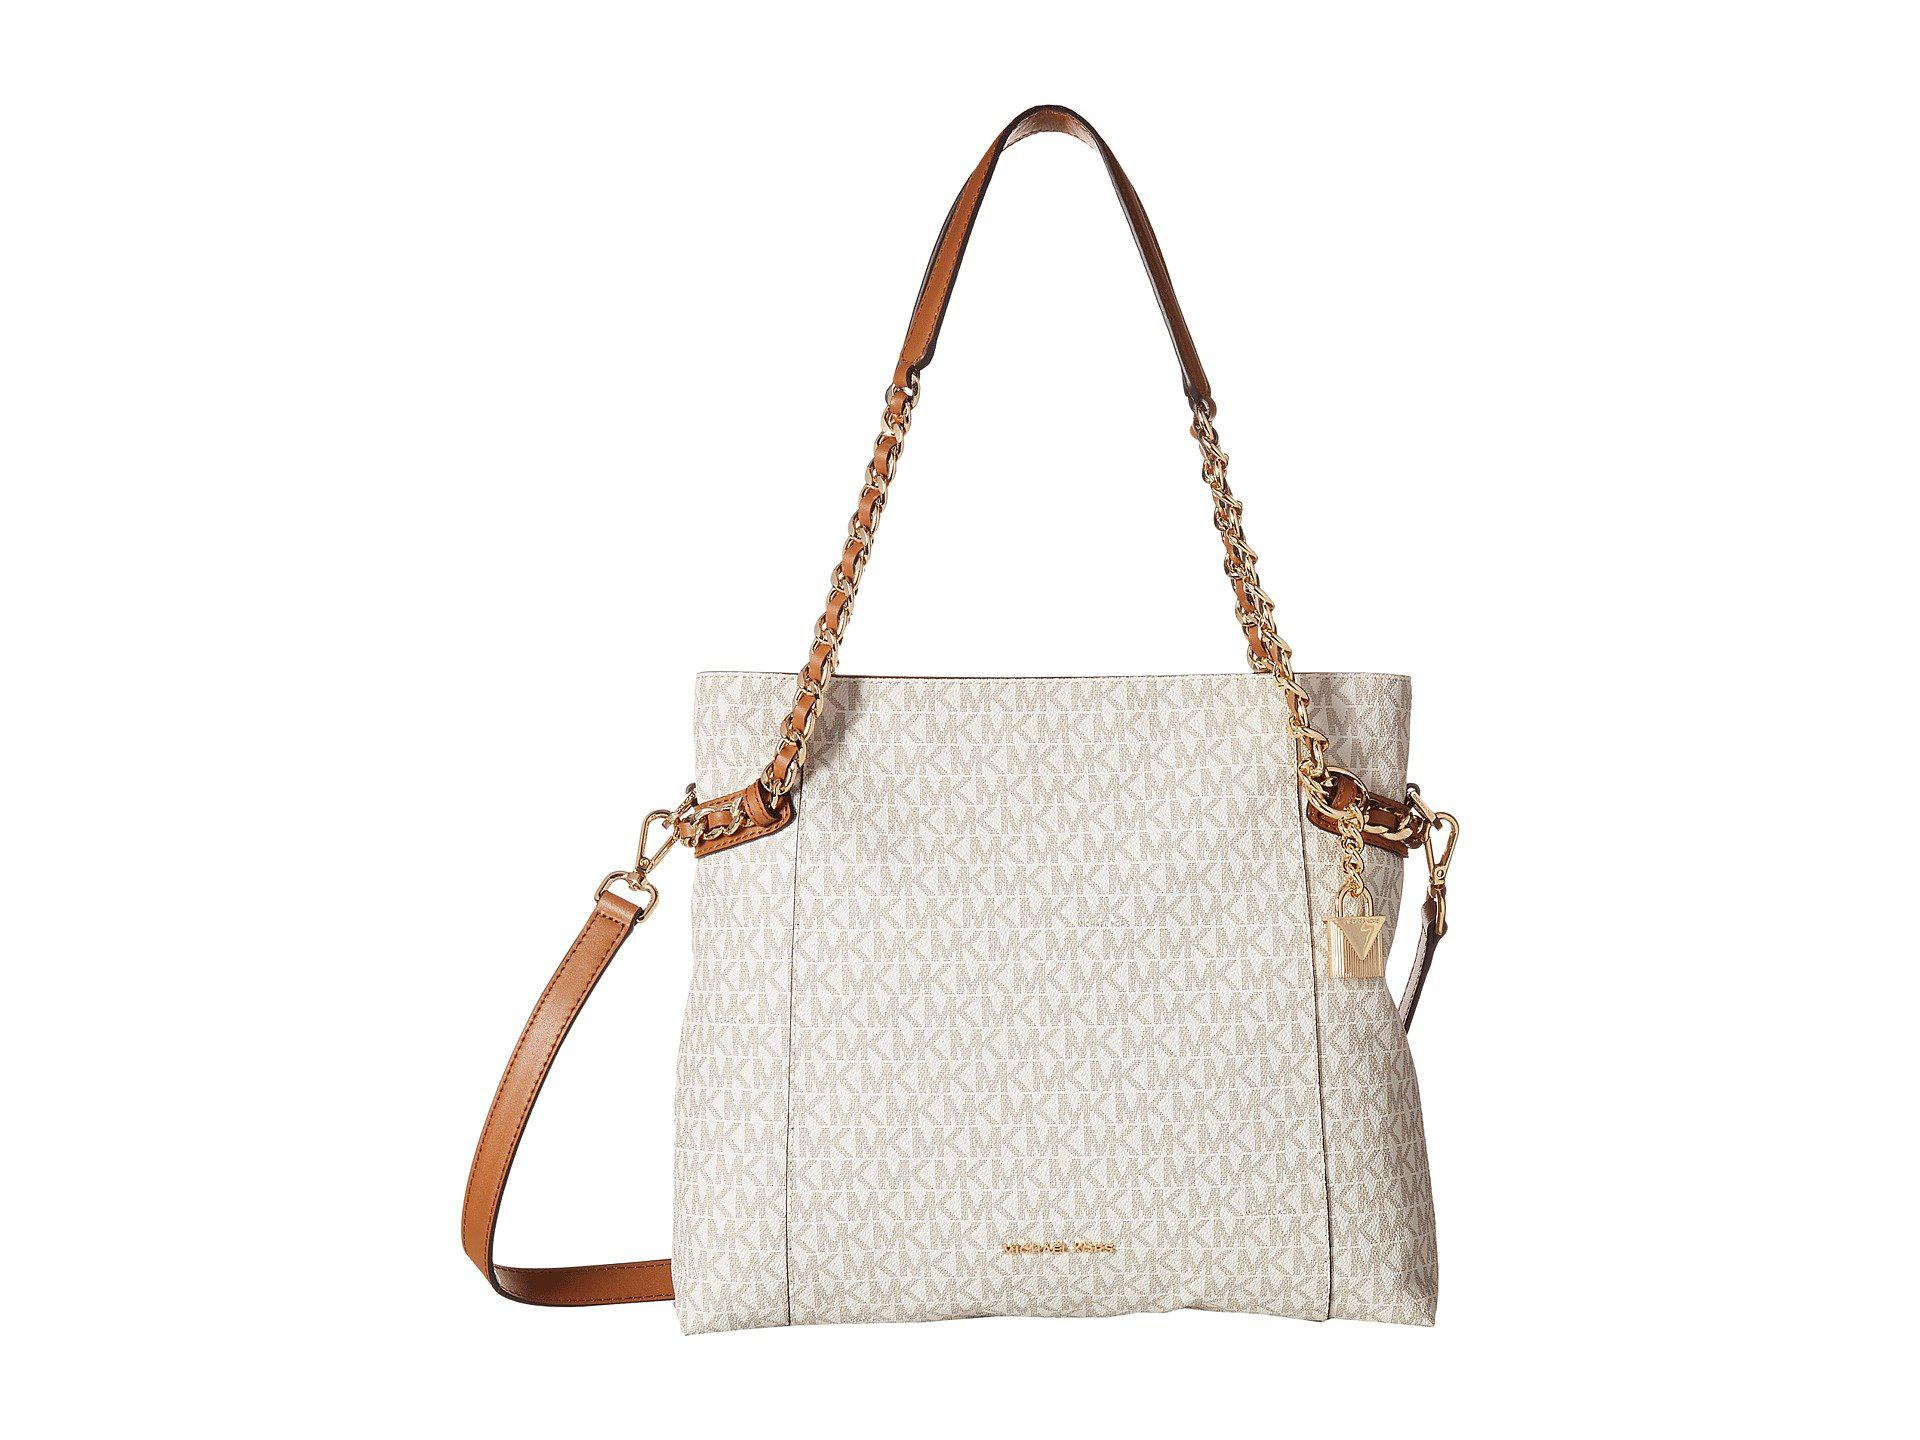 fbc193074916 Gallery. Previously sold at: 6PM, Zappos · Women's Michael Kors Charm